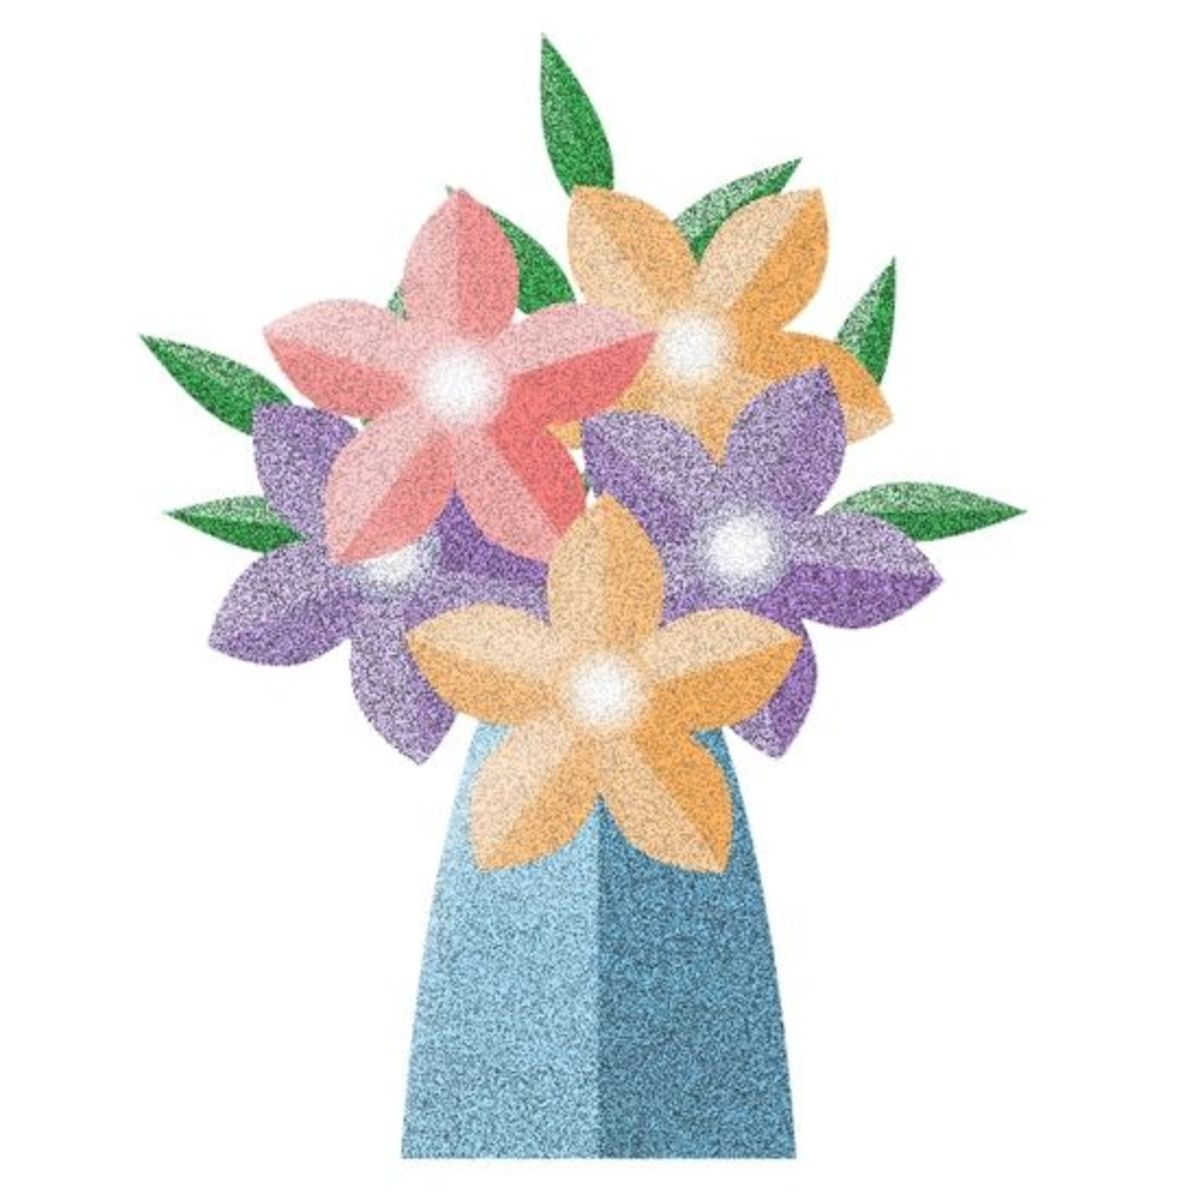 Spring Clip Art Flowers in Vase